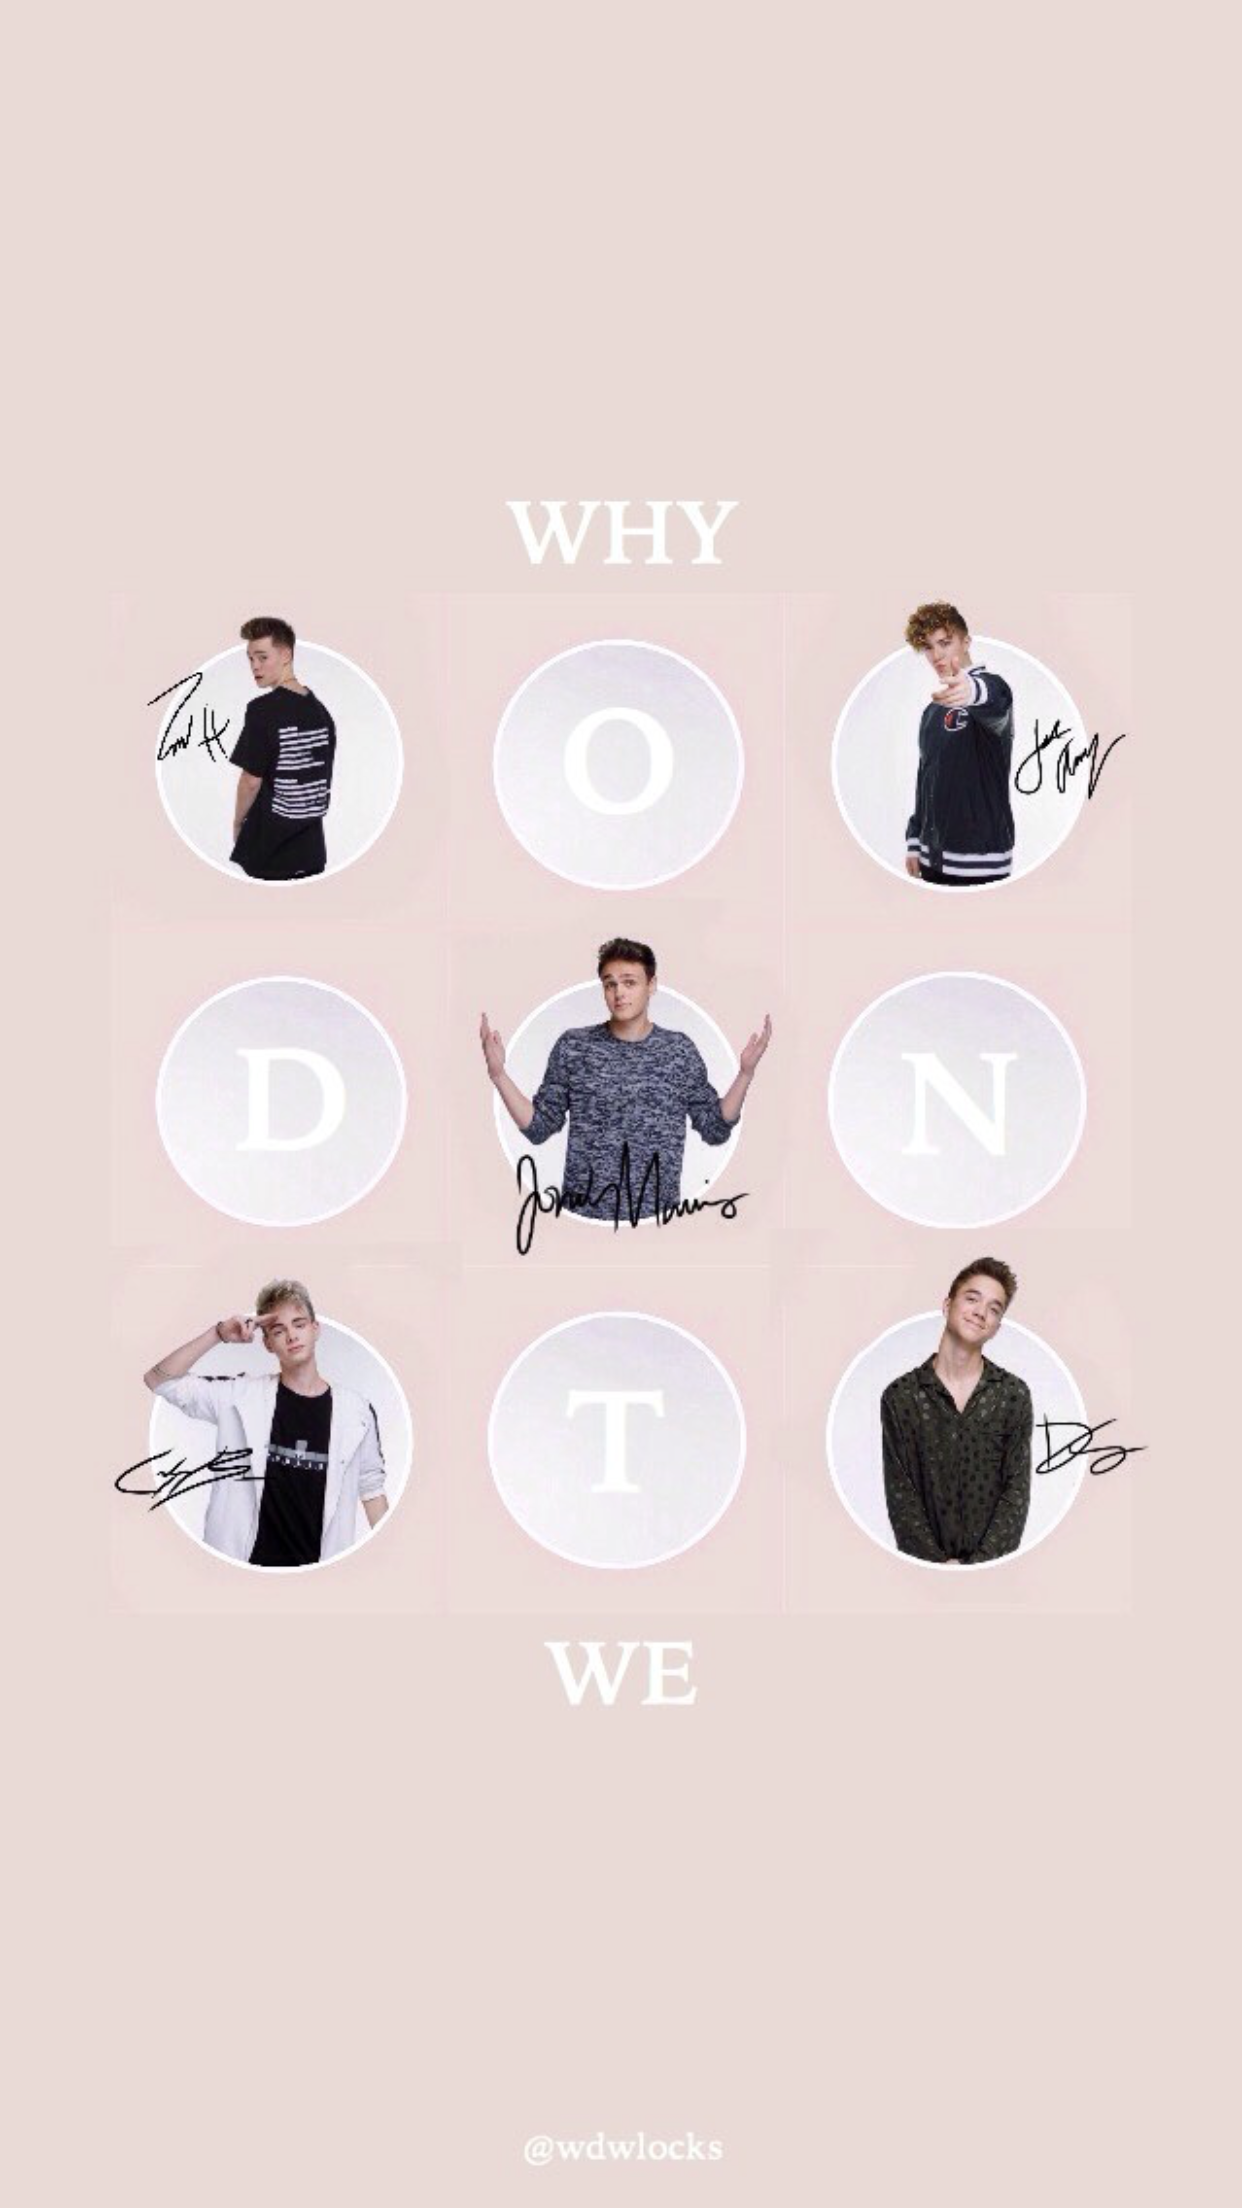 Pin By Alex On Why Don T We Why Dont We Boys Why Dont We Band Aesthetic Collage